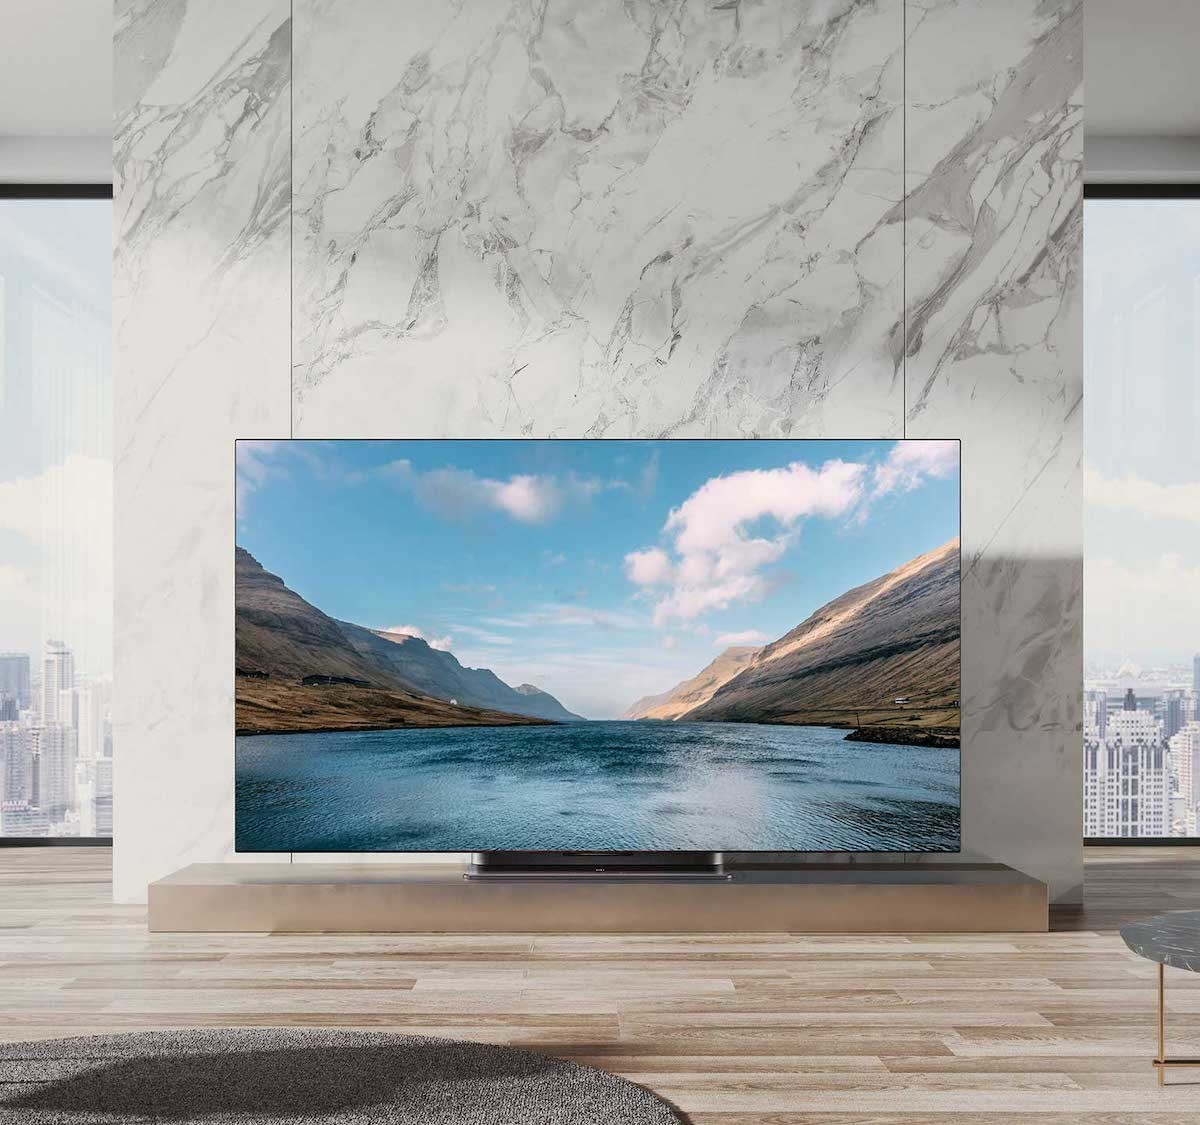 Xiaomi TV Master 65-Inch OLED Television uses self-luminous technology instead of backlighting